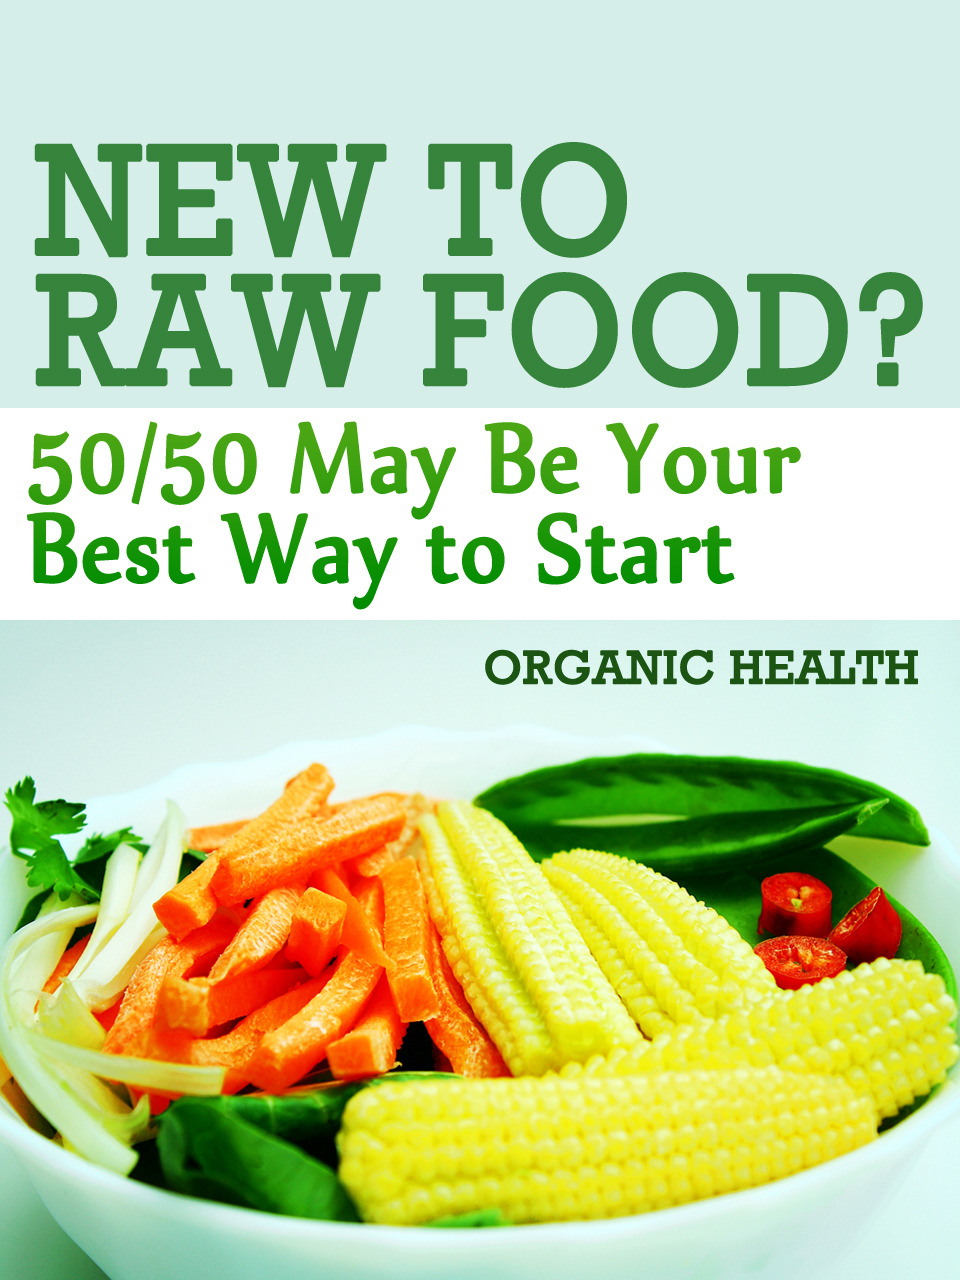 New to Raw Food?  50/50 May Be Your Best Way to Start